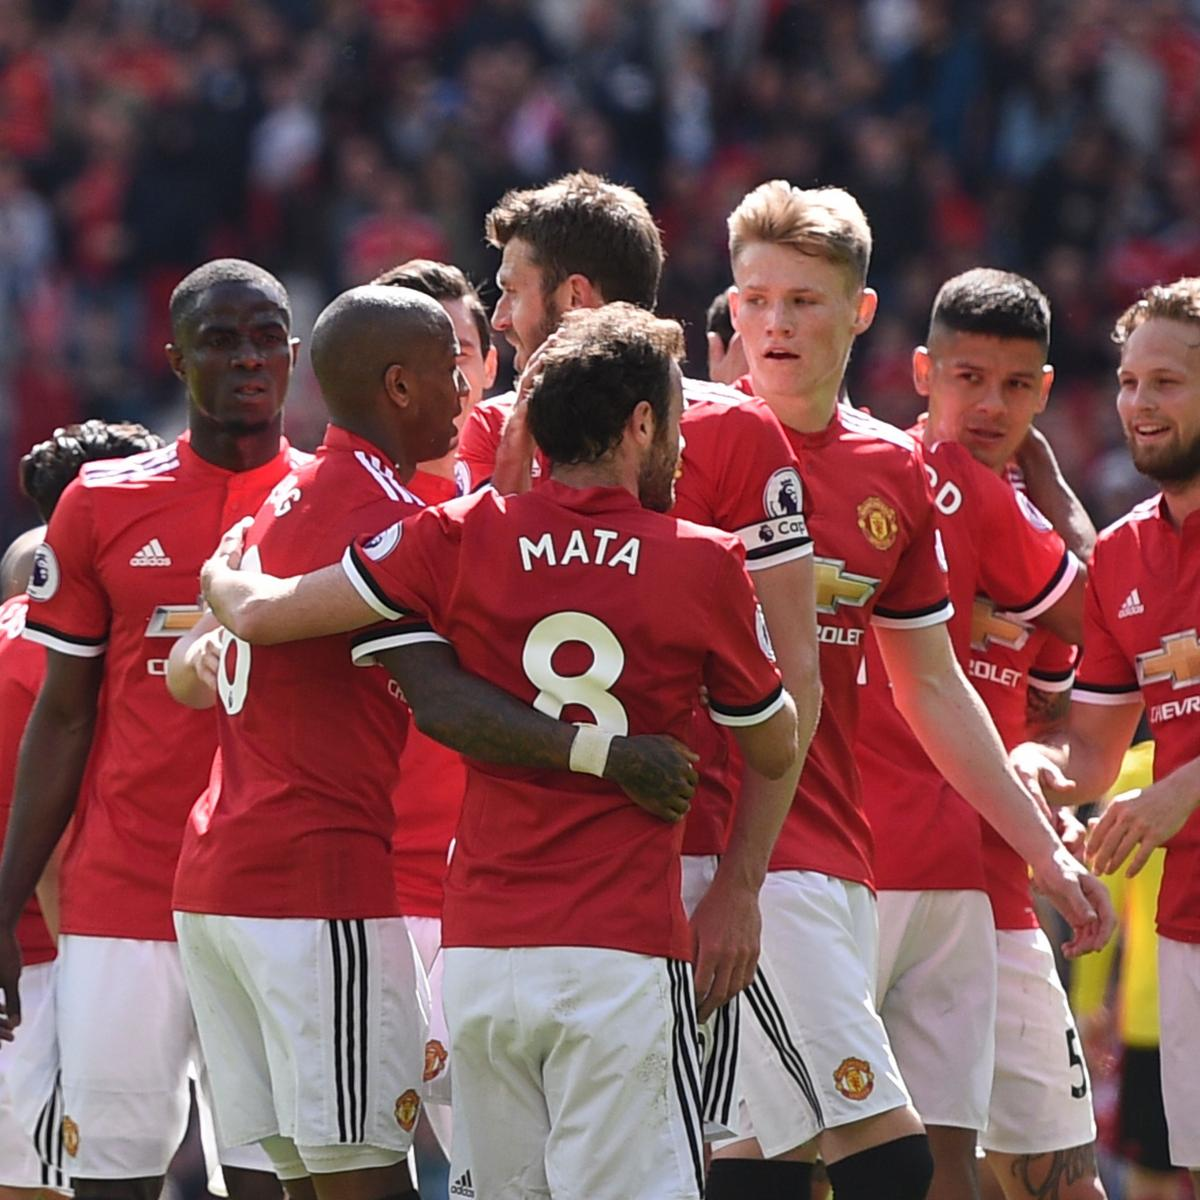 Manchester United Named Most Valuable Football Club by Forbes